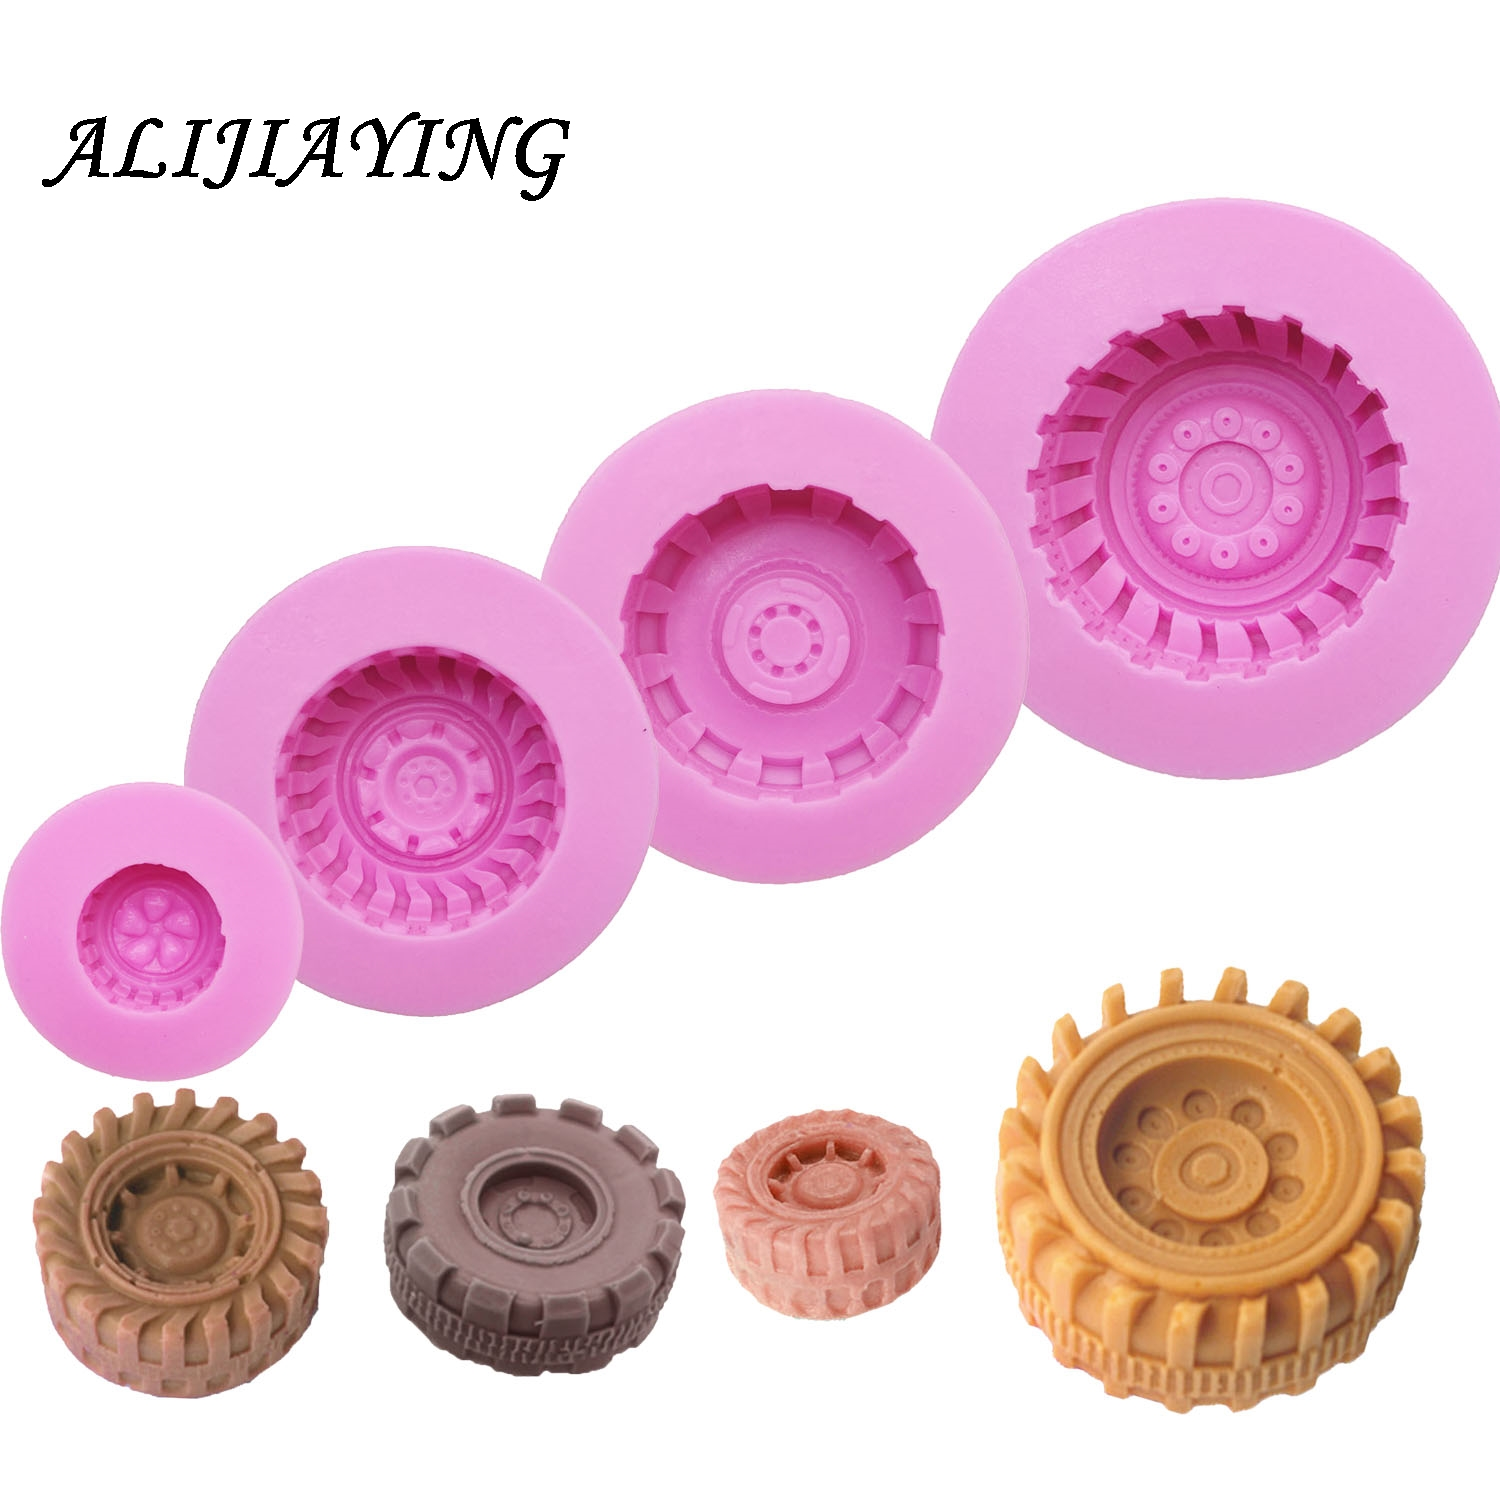 1Pcs Silicone Mold Tires Wheel Chocolate Cake Molds Car Tyre Shape Fondant Decorating Tools Resin Clay Soap D0623